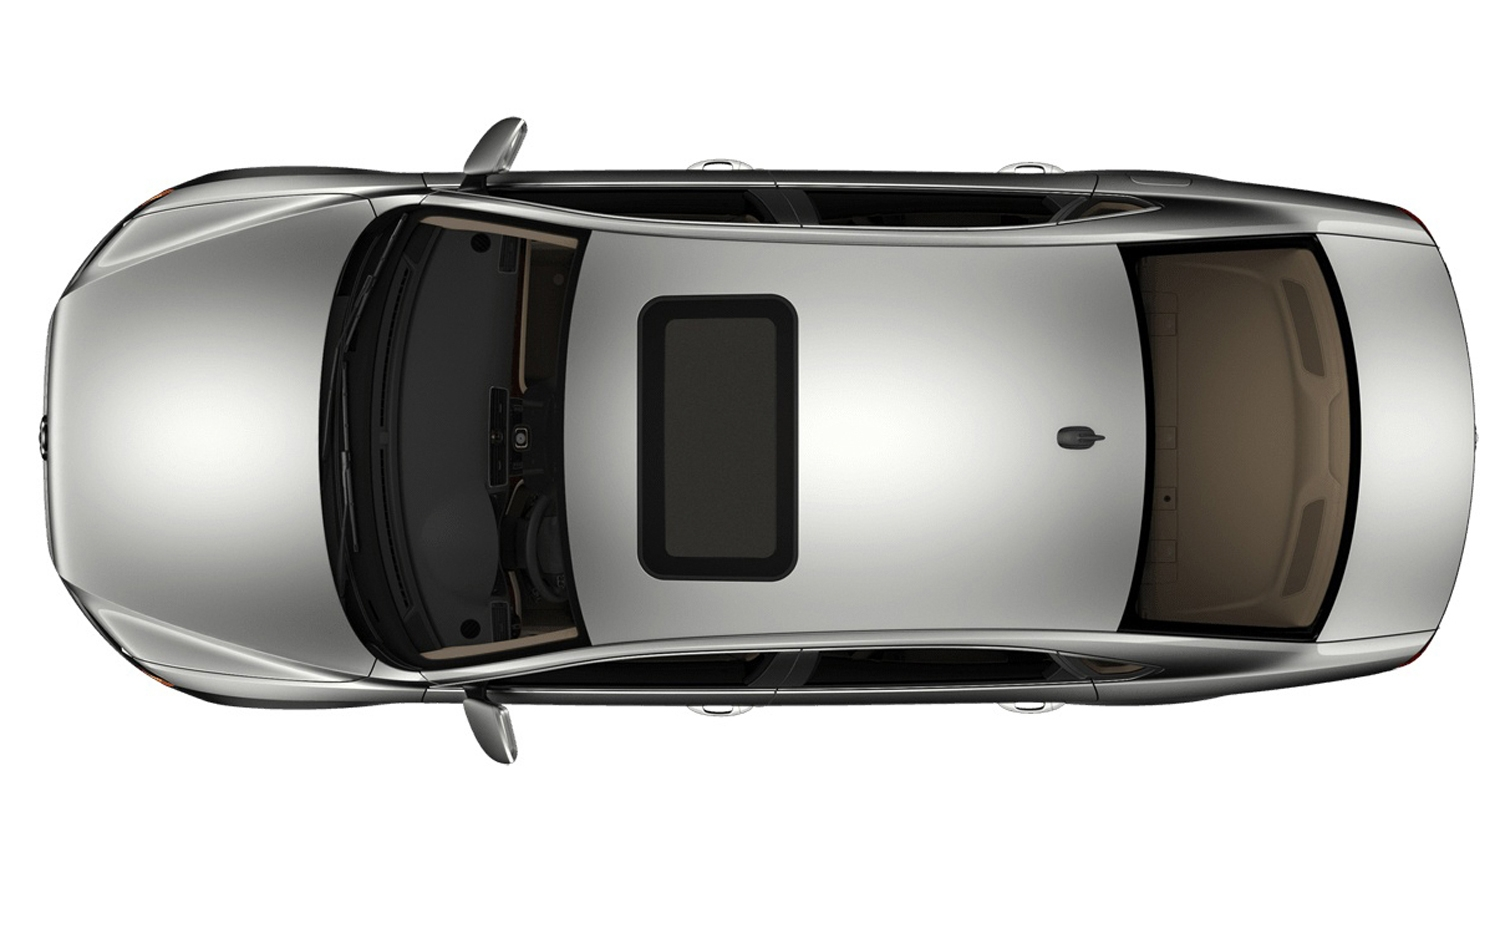 Car Png Top View Png Transparent Car Top View Png Png